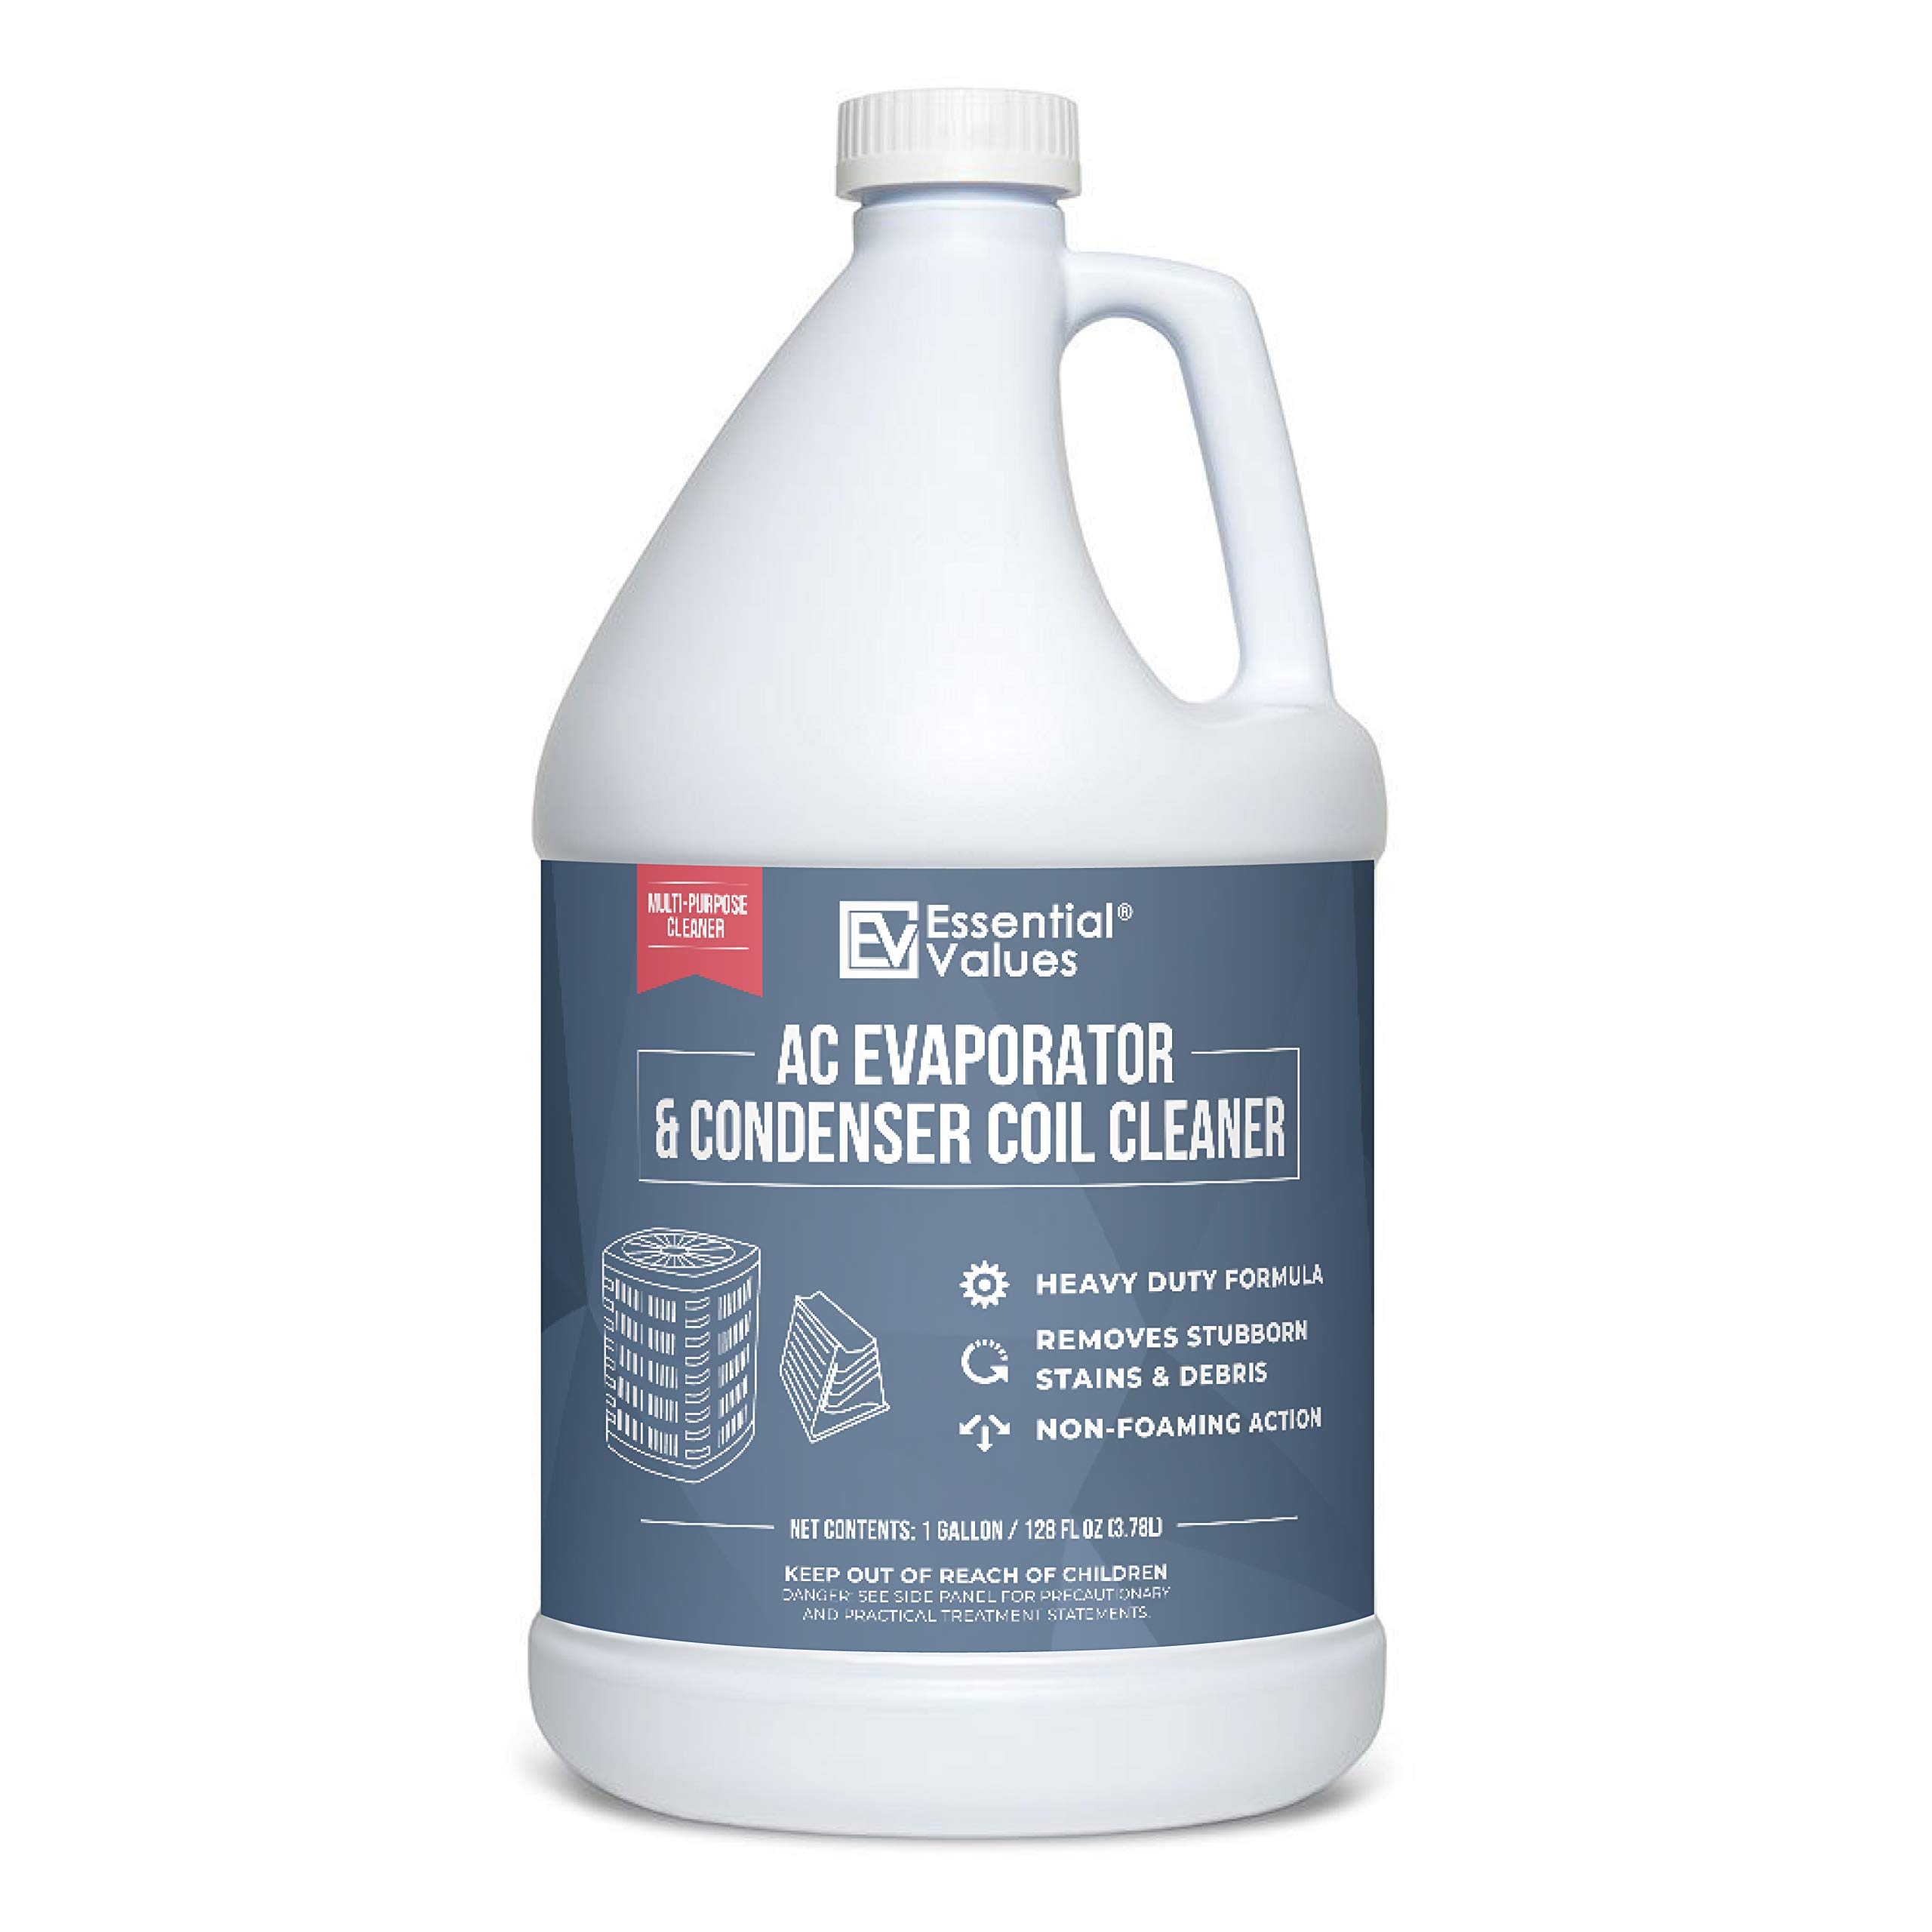 Coil Cleaner (Gallon), Made in USA | AC Coil Cleaner That is Non-Foaming Formula for Condenser Coils & MORE - Heavy Duty Professional Grade Cleaner compatible with Commercial & Residential AC Units